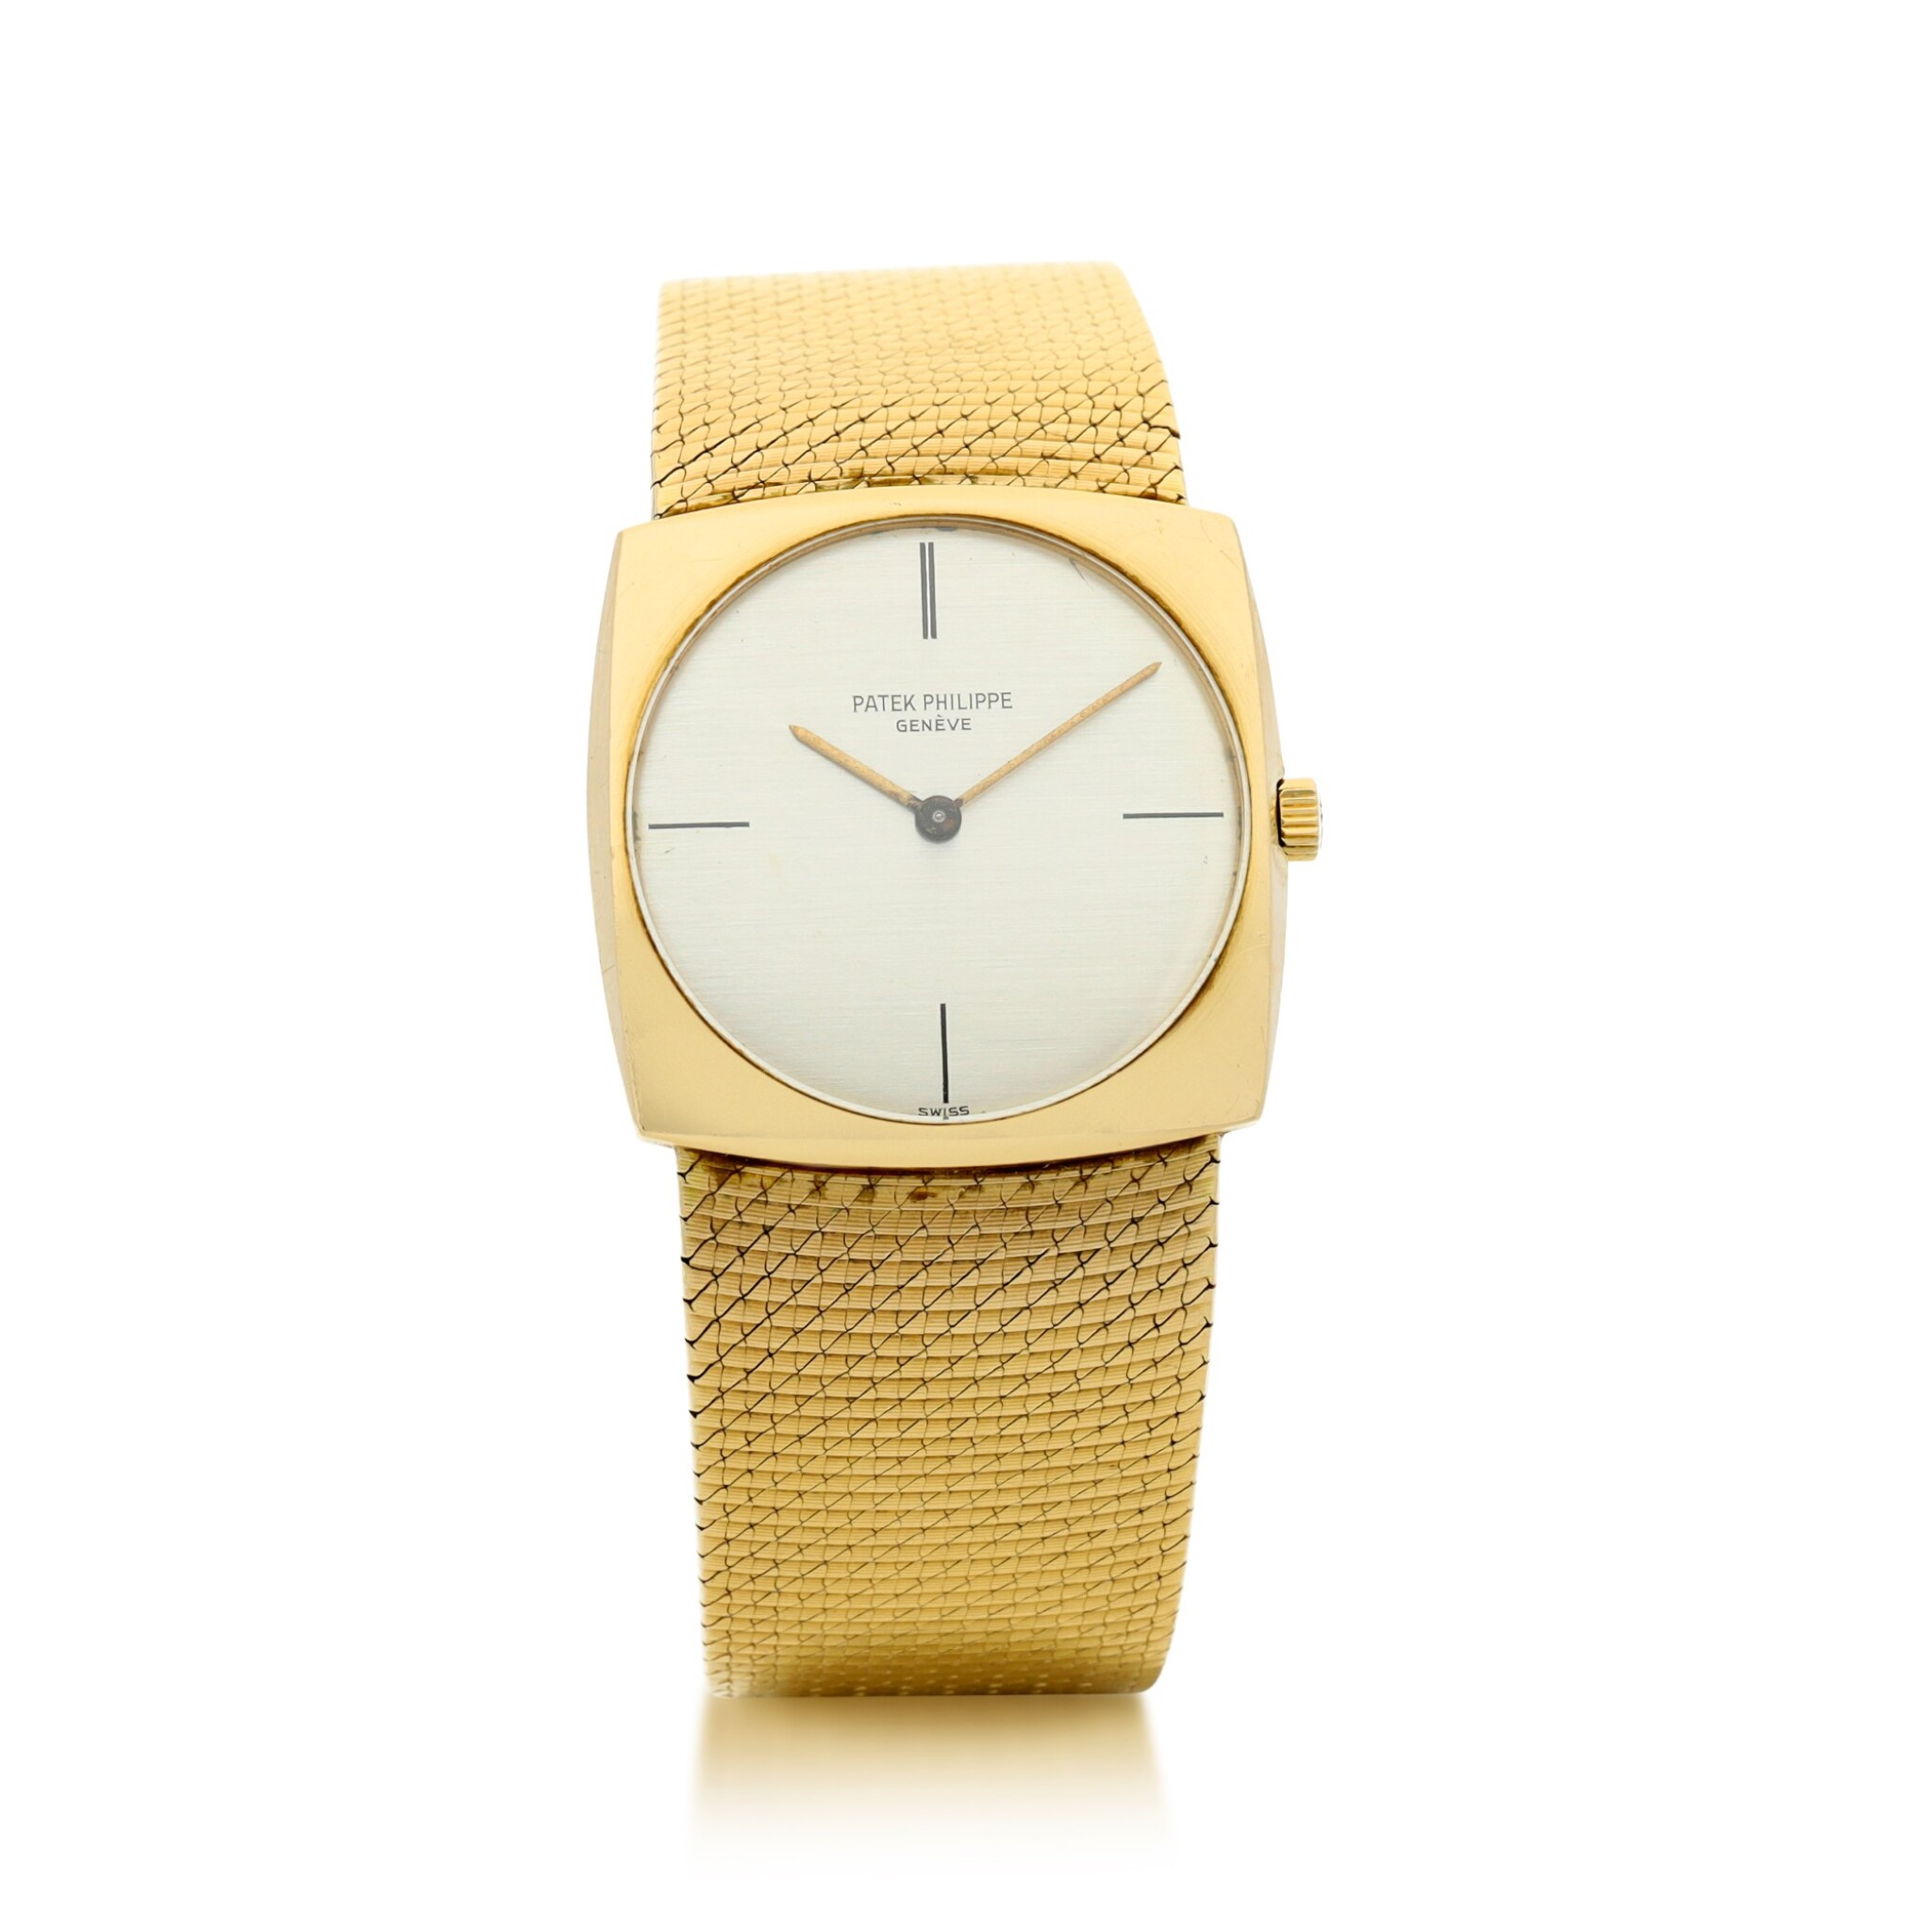 View full screen - View 1 of Lot 56. PATEK PHILIPPE | REFERENCE 3523/1  A YELLOW GOLD SQUARE-SHAPED BRACELET WATCH, MADE IN 1965.